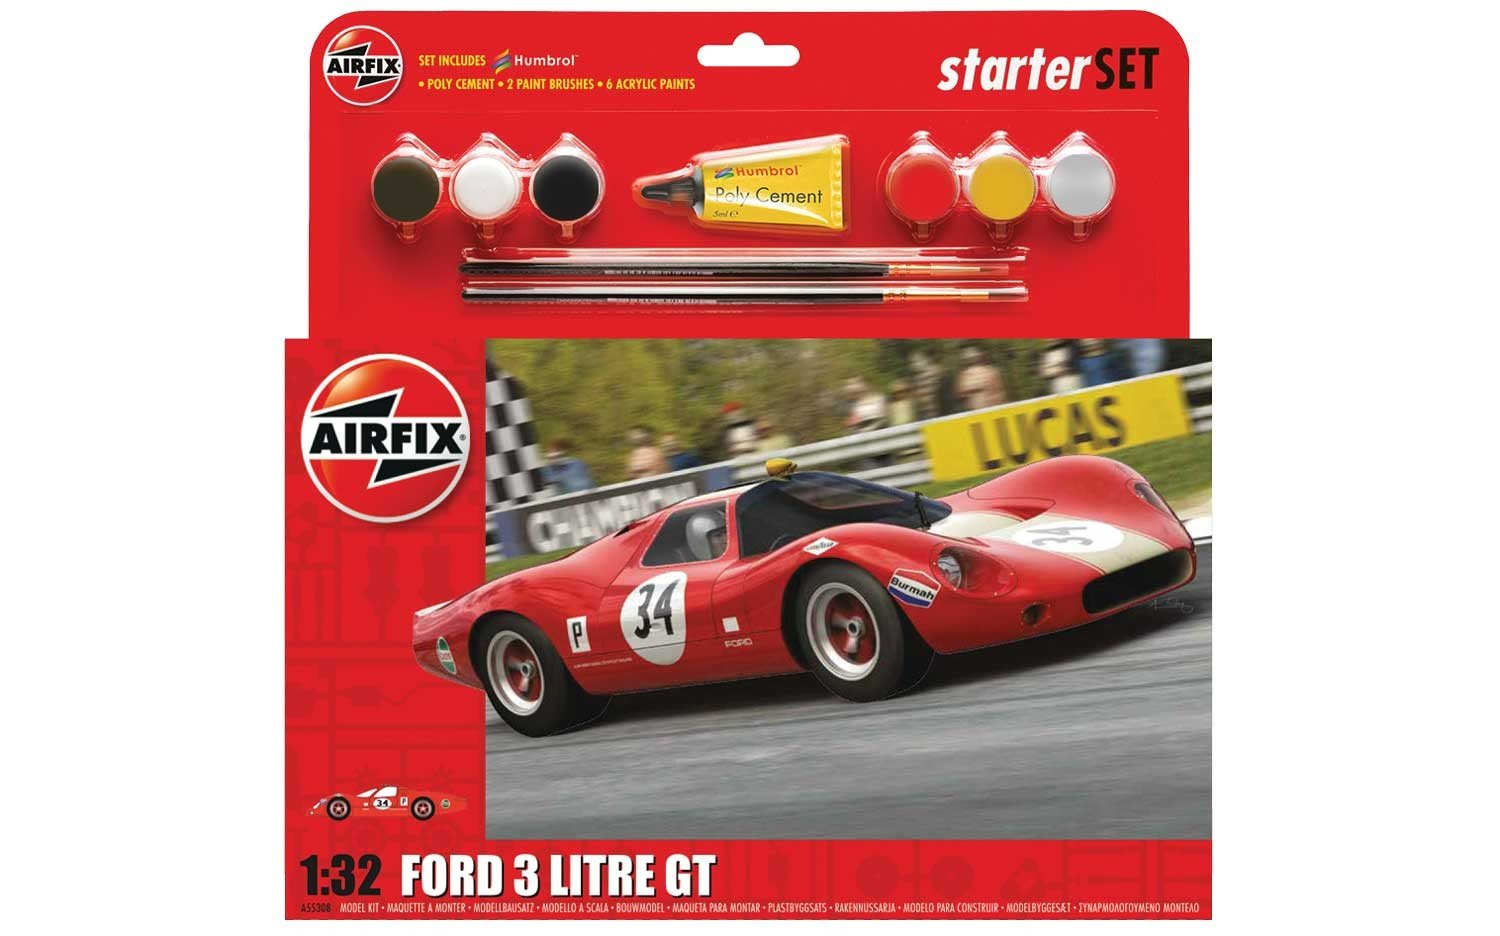 Airfix 1:32nd Scale Ford 3 Litre GT Plastic Model Large Starter Gift Set